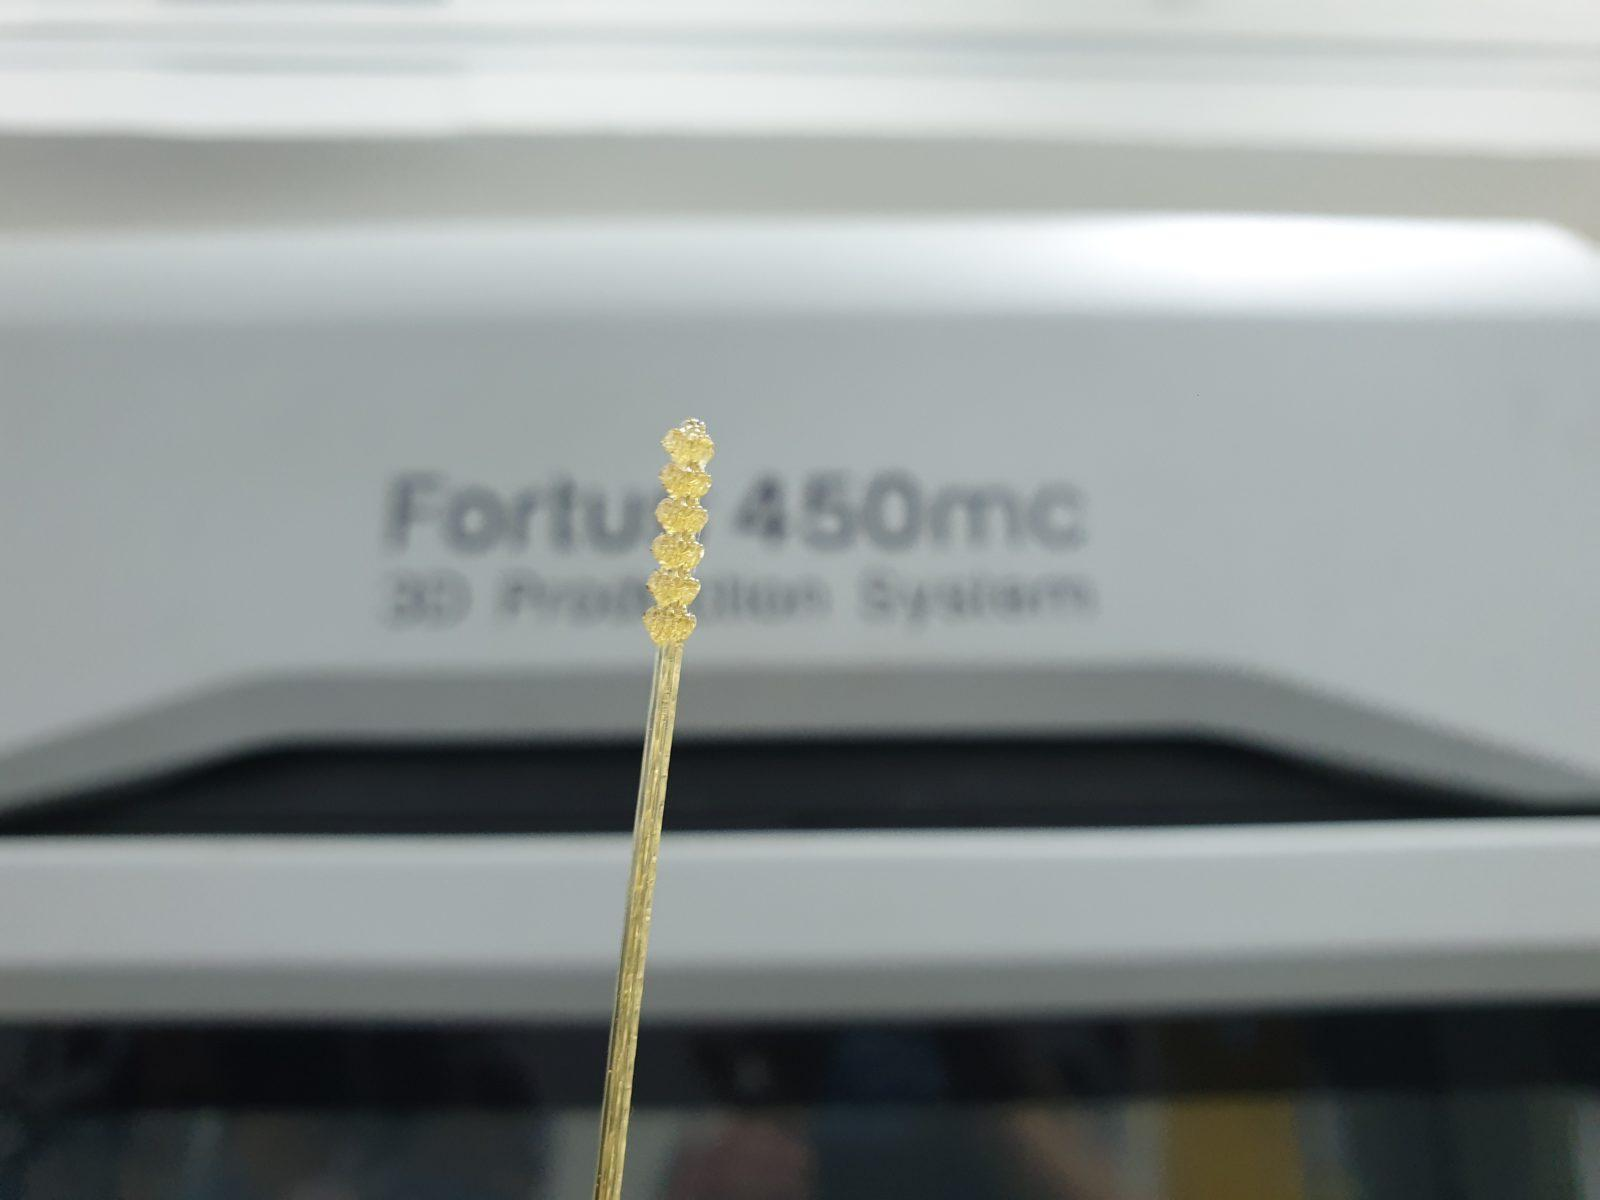 3D Printed Nasal Swabs using ULTEM1010™ material printed from a Stratasys F450mc.